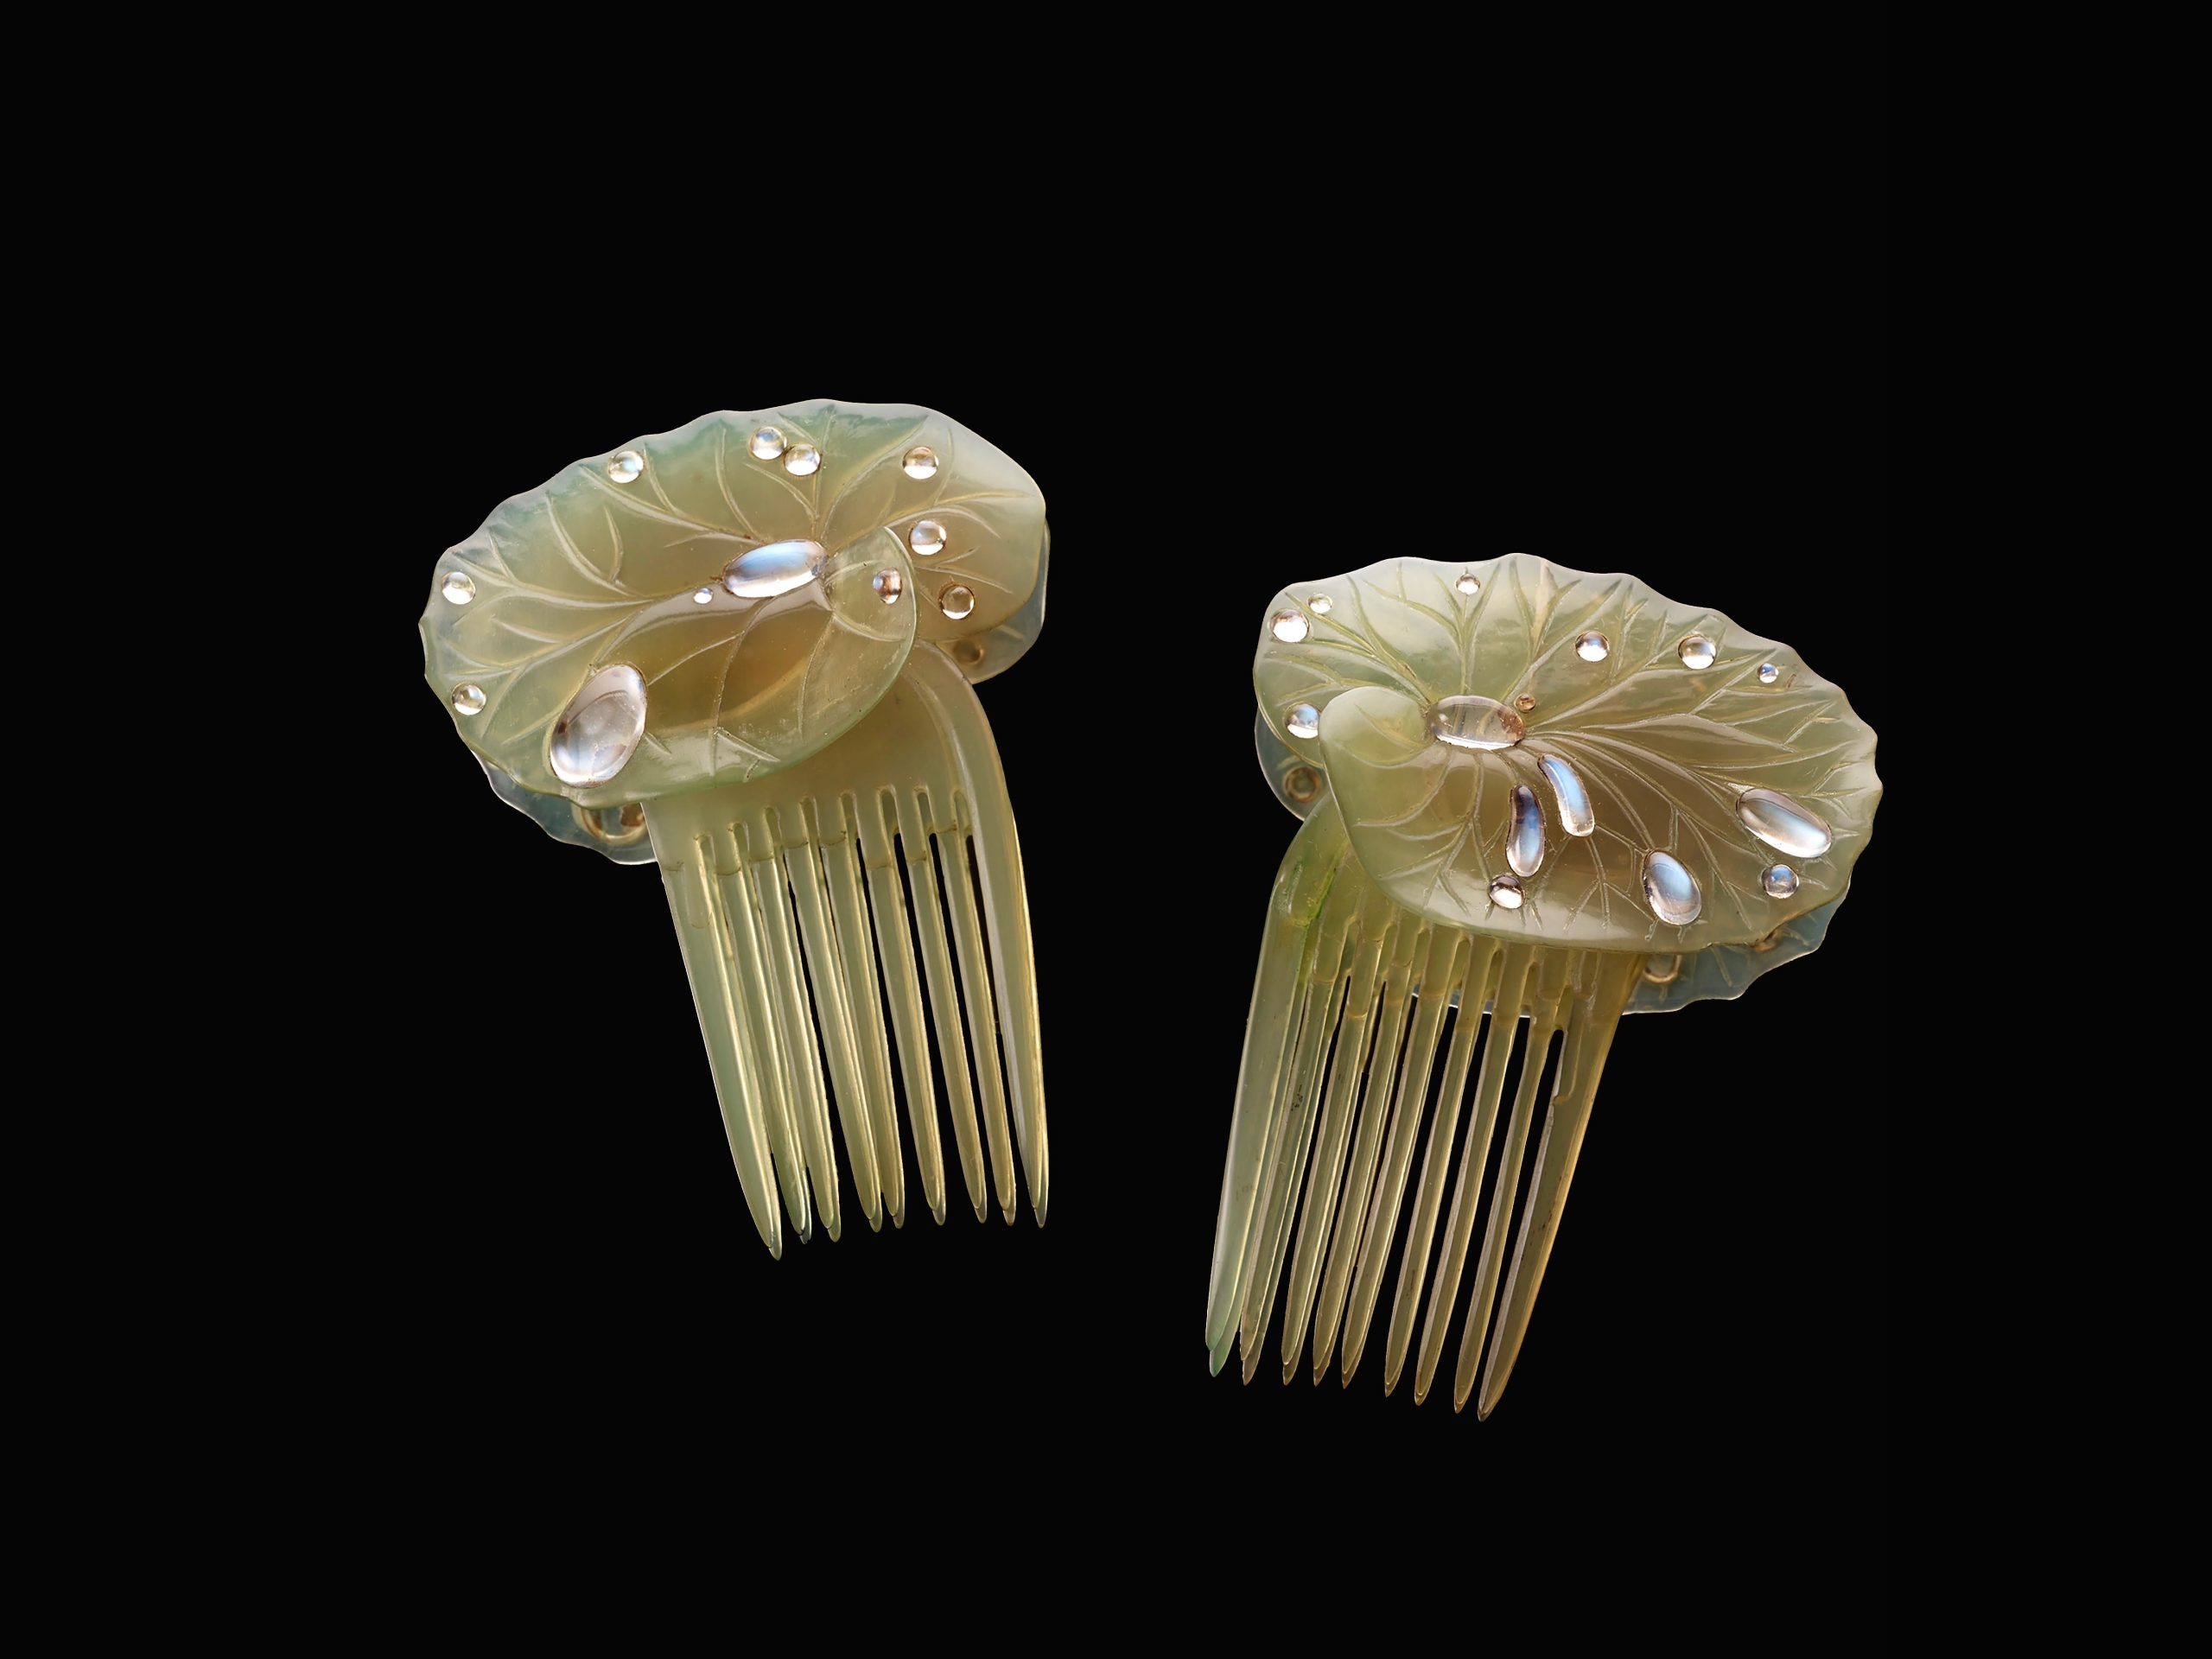 It is possible to be stunning and subtle simultaneously. British artist Ella Naper made her 'lily-pad hair combs' from horn and moonstone circa 1906. (photo: John Faier © The Richard H. Driehaus Museum)